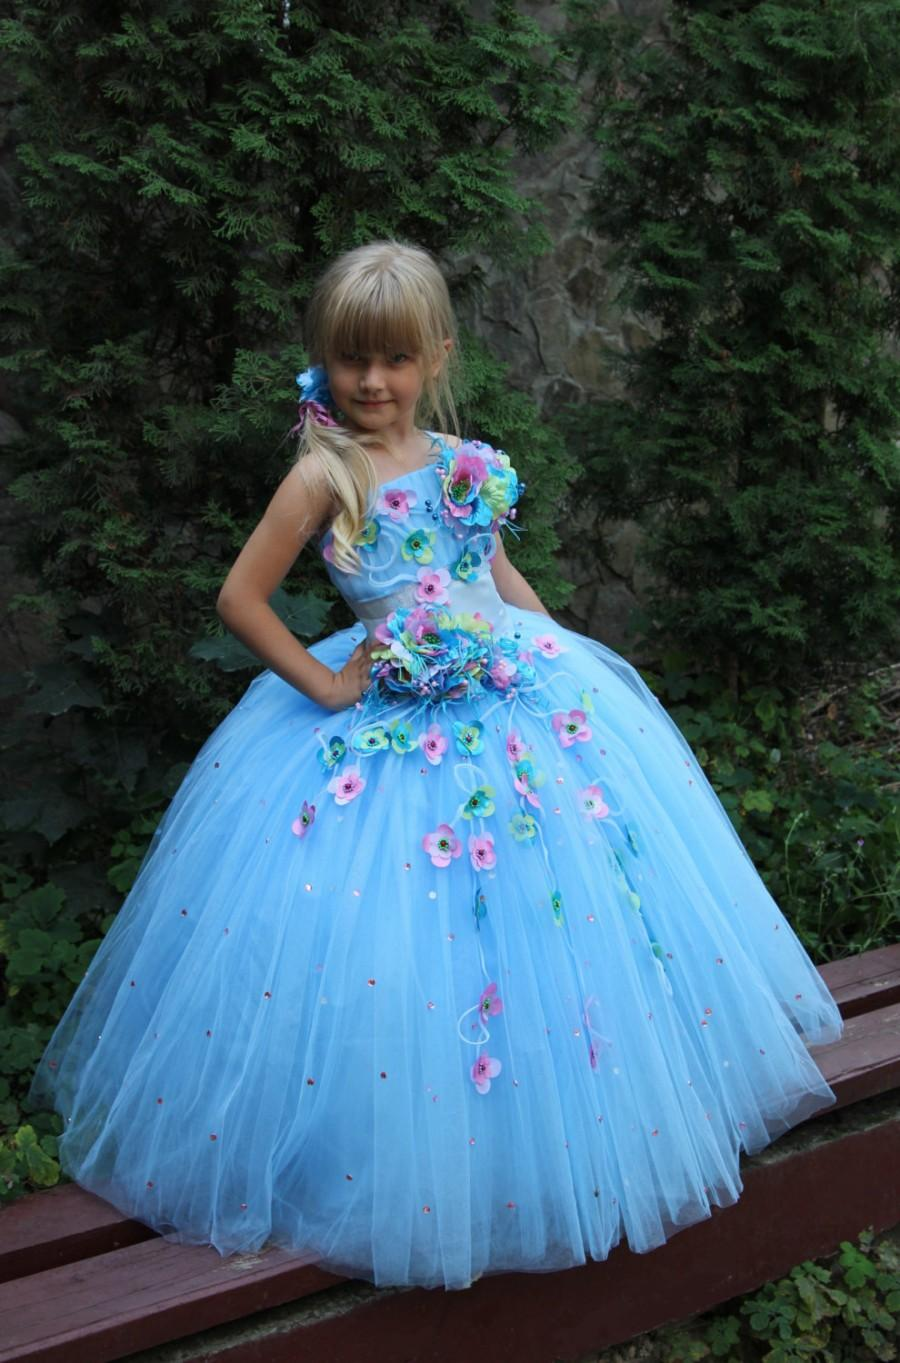 Boda - White Blue Orange Turquoise Flower Girls Dress - Birthday Wedding Party Holiday Peasant Bridesmaid Blue White Orange Tulle Dress